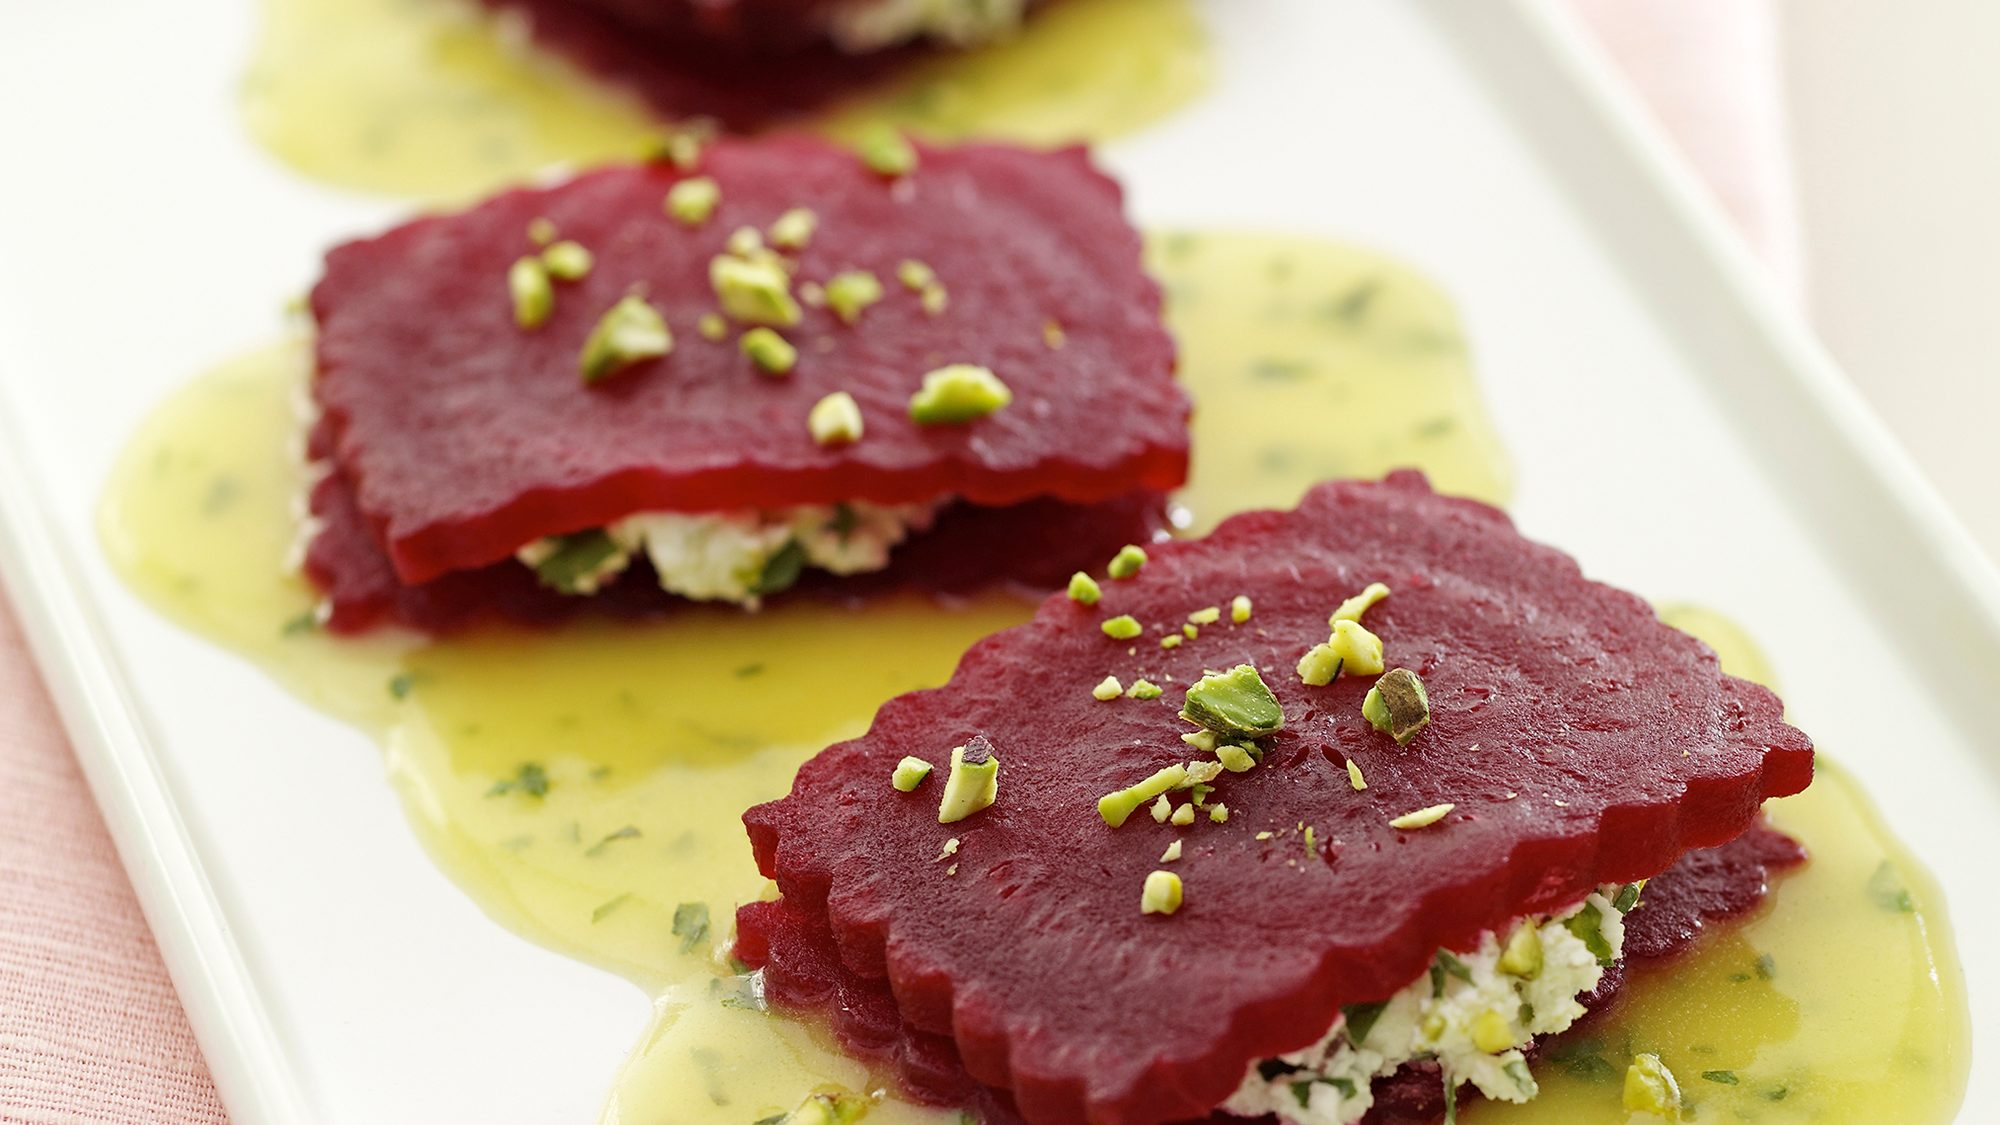 McCormick Gourmet Goat Cheese Beet Ravioli with Tarragon Orange Sauce